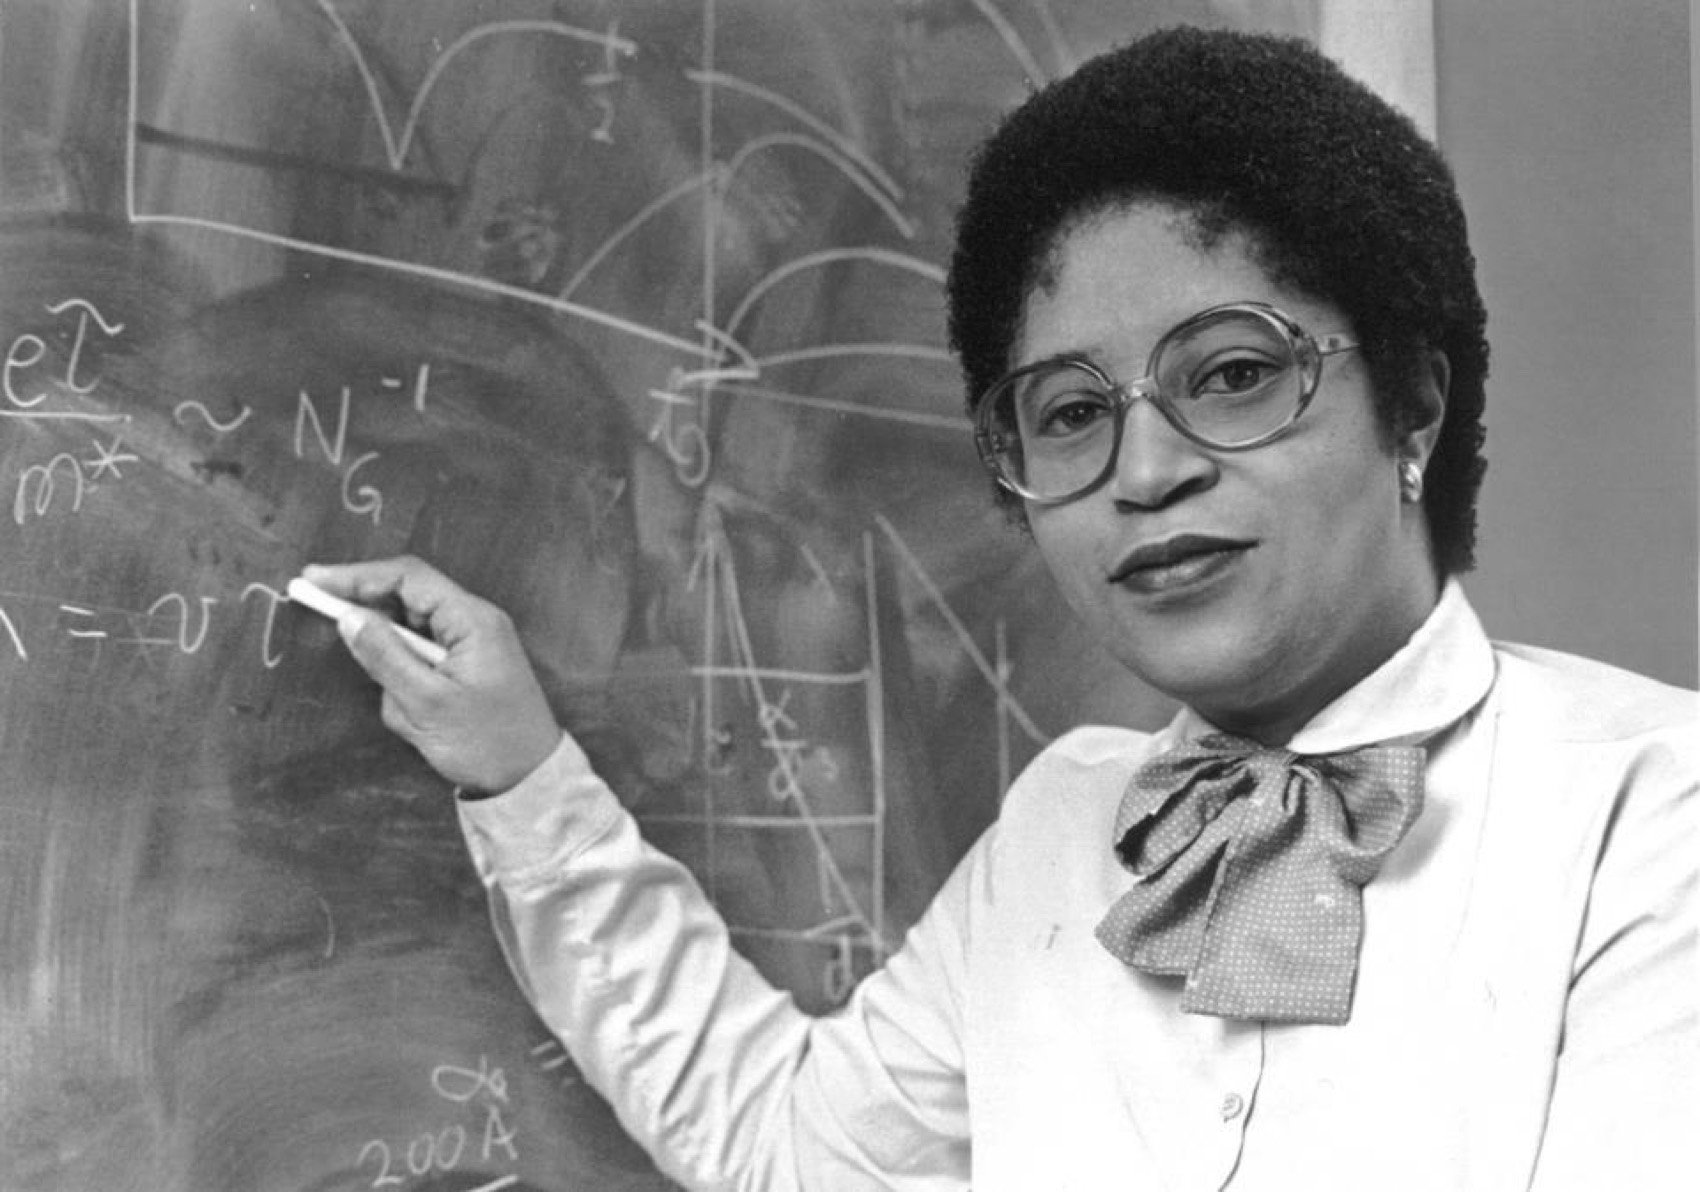 Shirley Ann Jackson is the first African American woman to earn a doctorate at MIT and the second African American woman in the U.S. to earn a doctorate in physics. She is currently the 18th president of Rensselaer Polytechnic Institute.